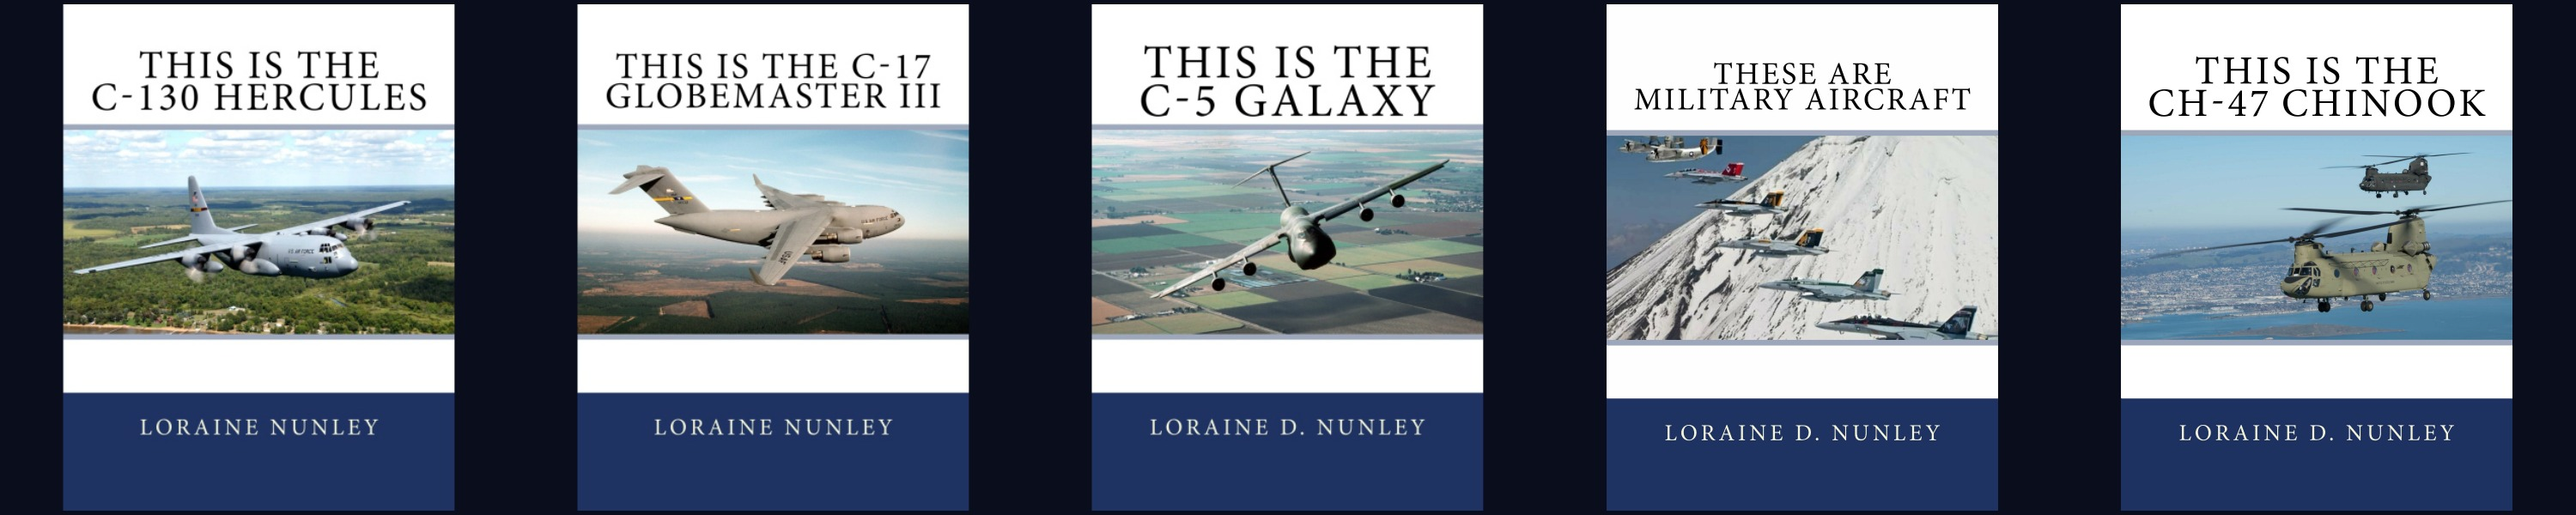 Military Aircraft series for children by Loraine D. Nunley